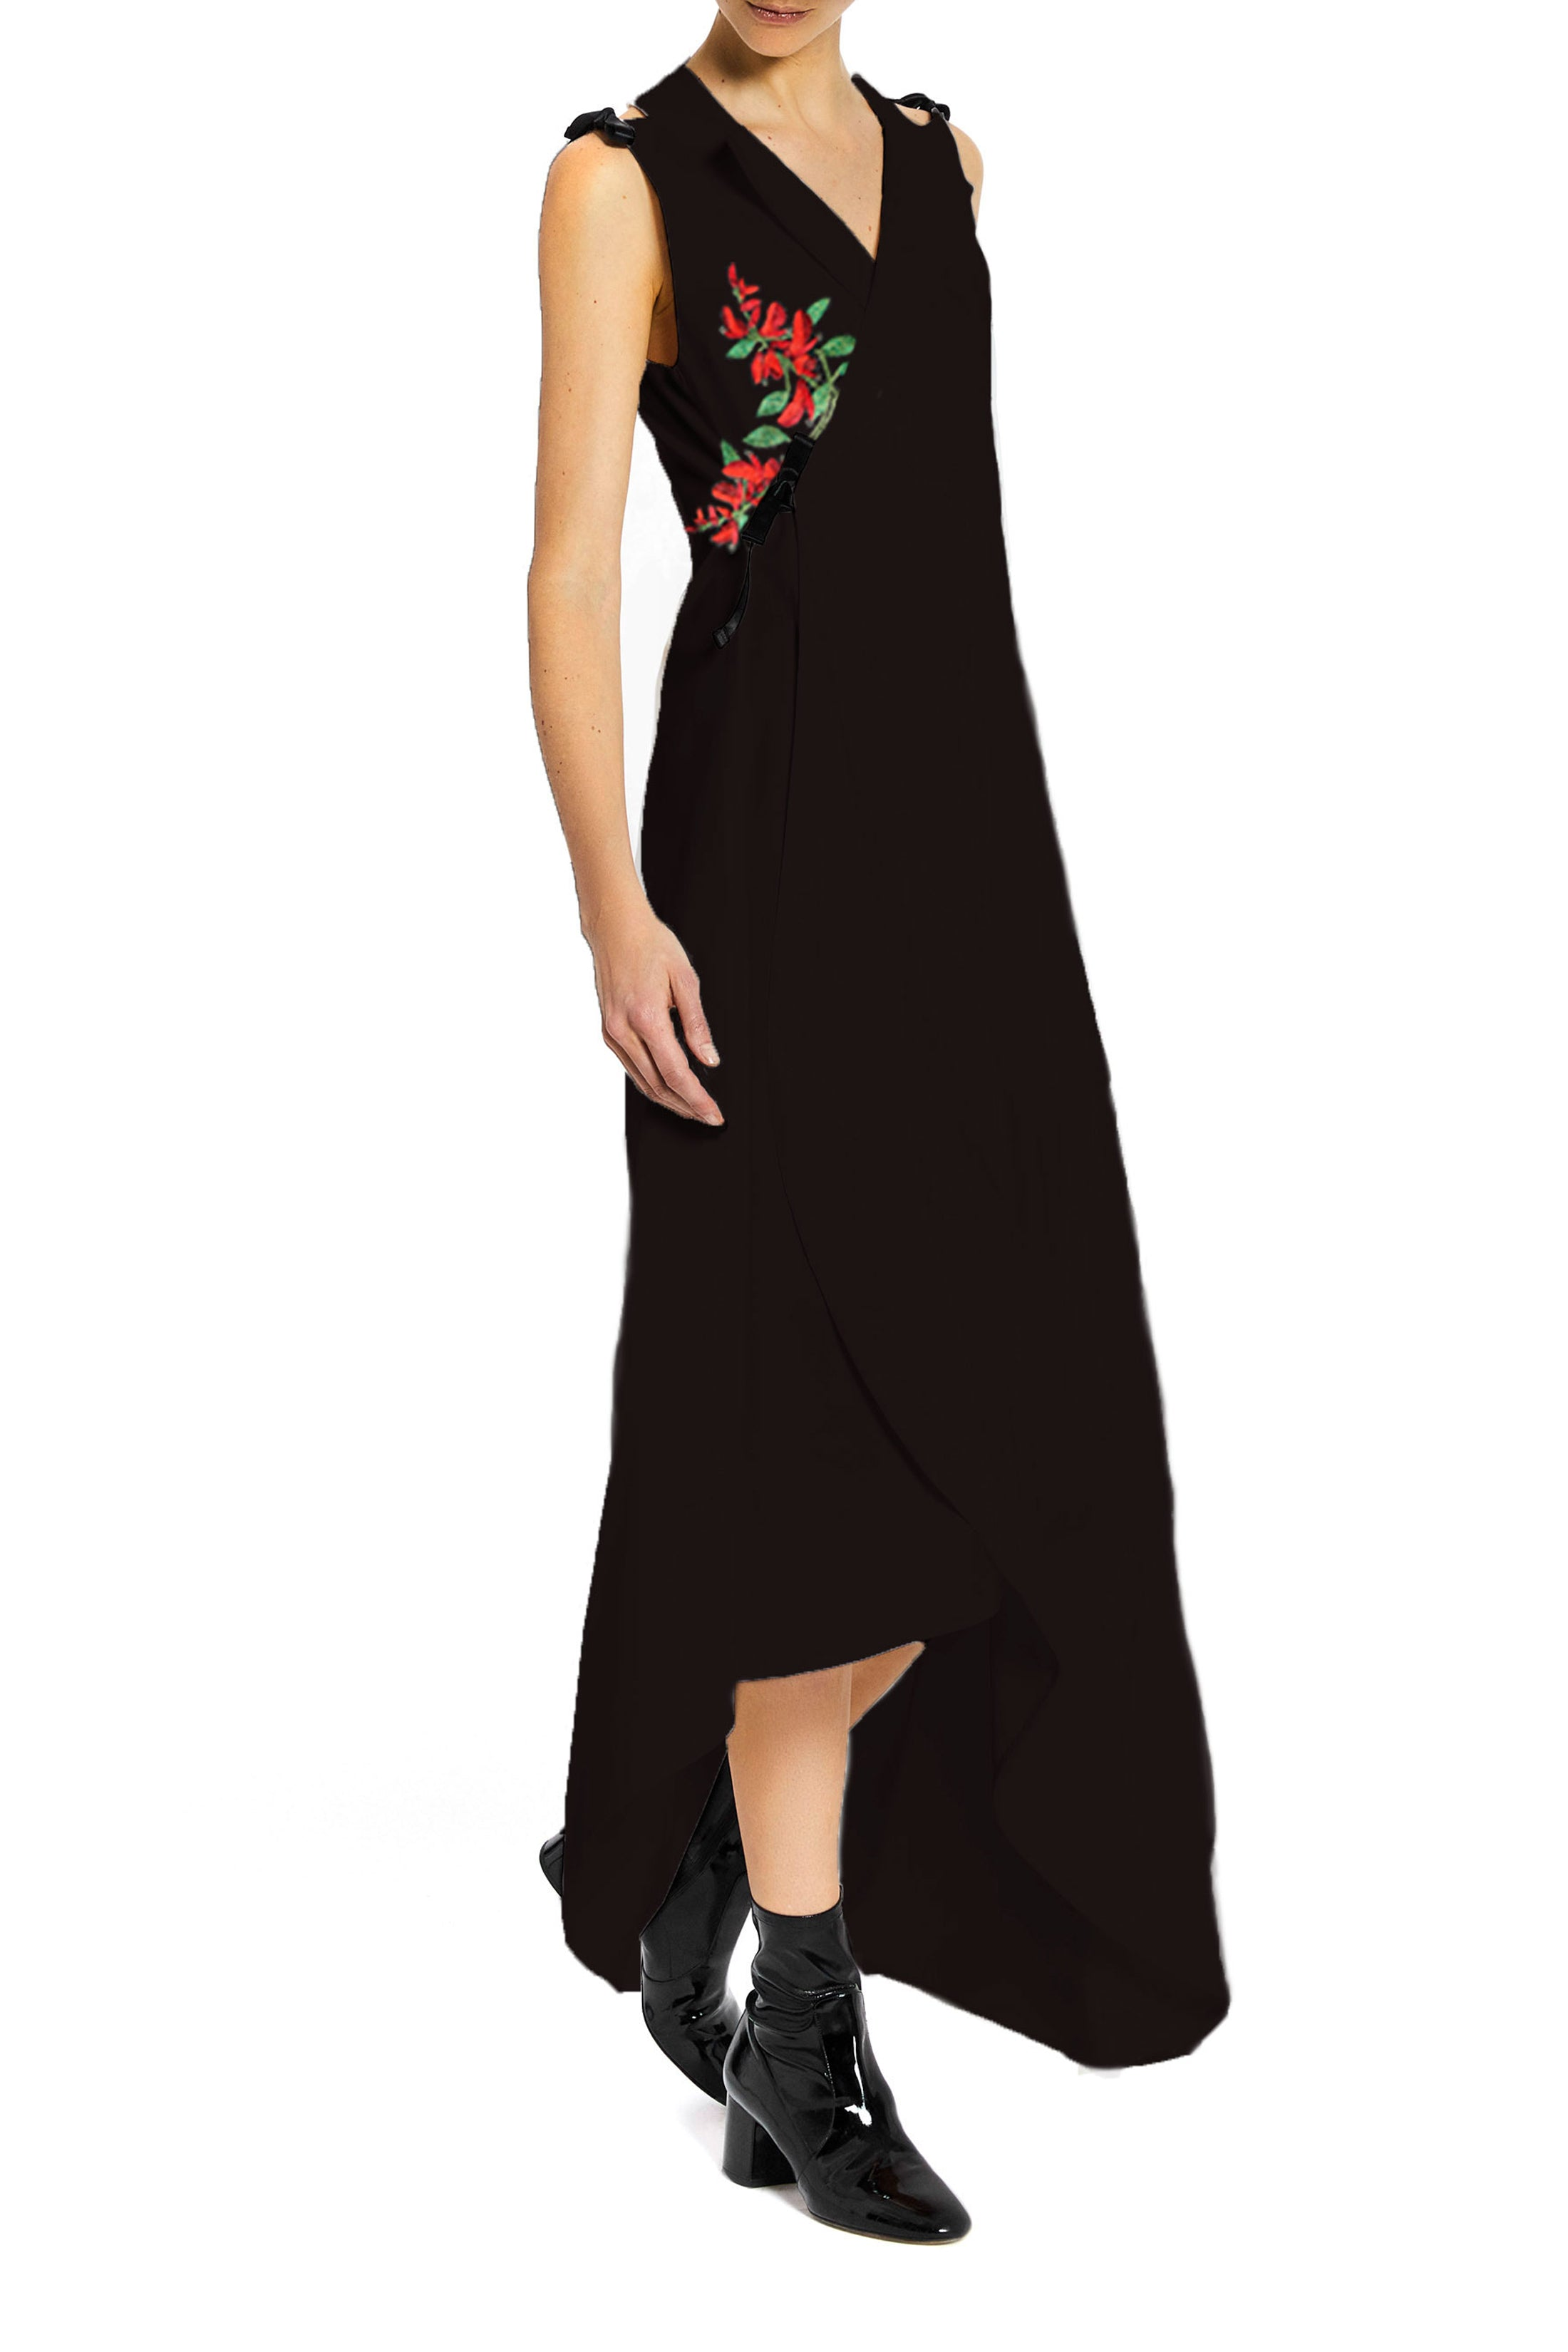 Tuxedo Dress with Embroidered Flower